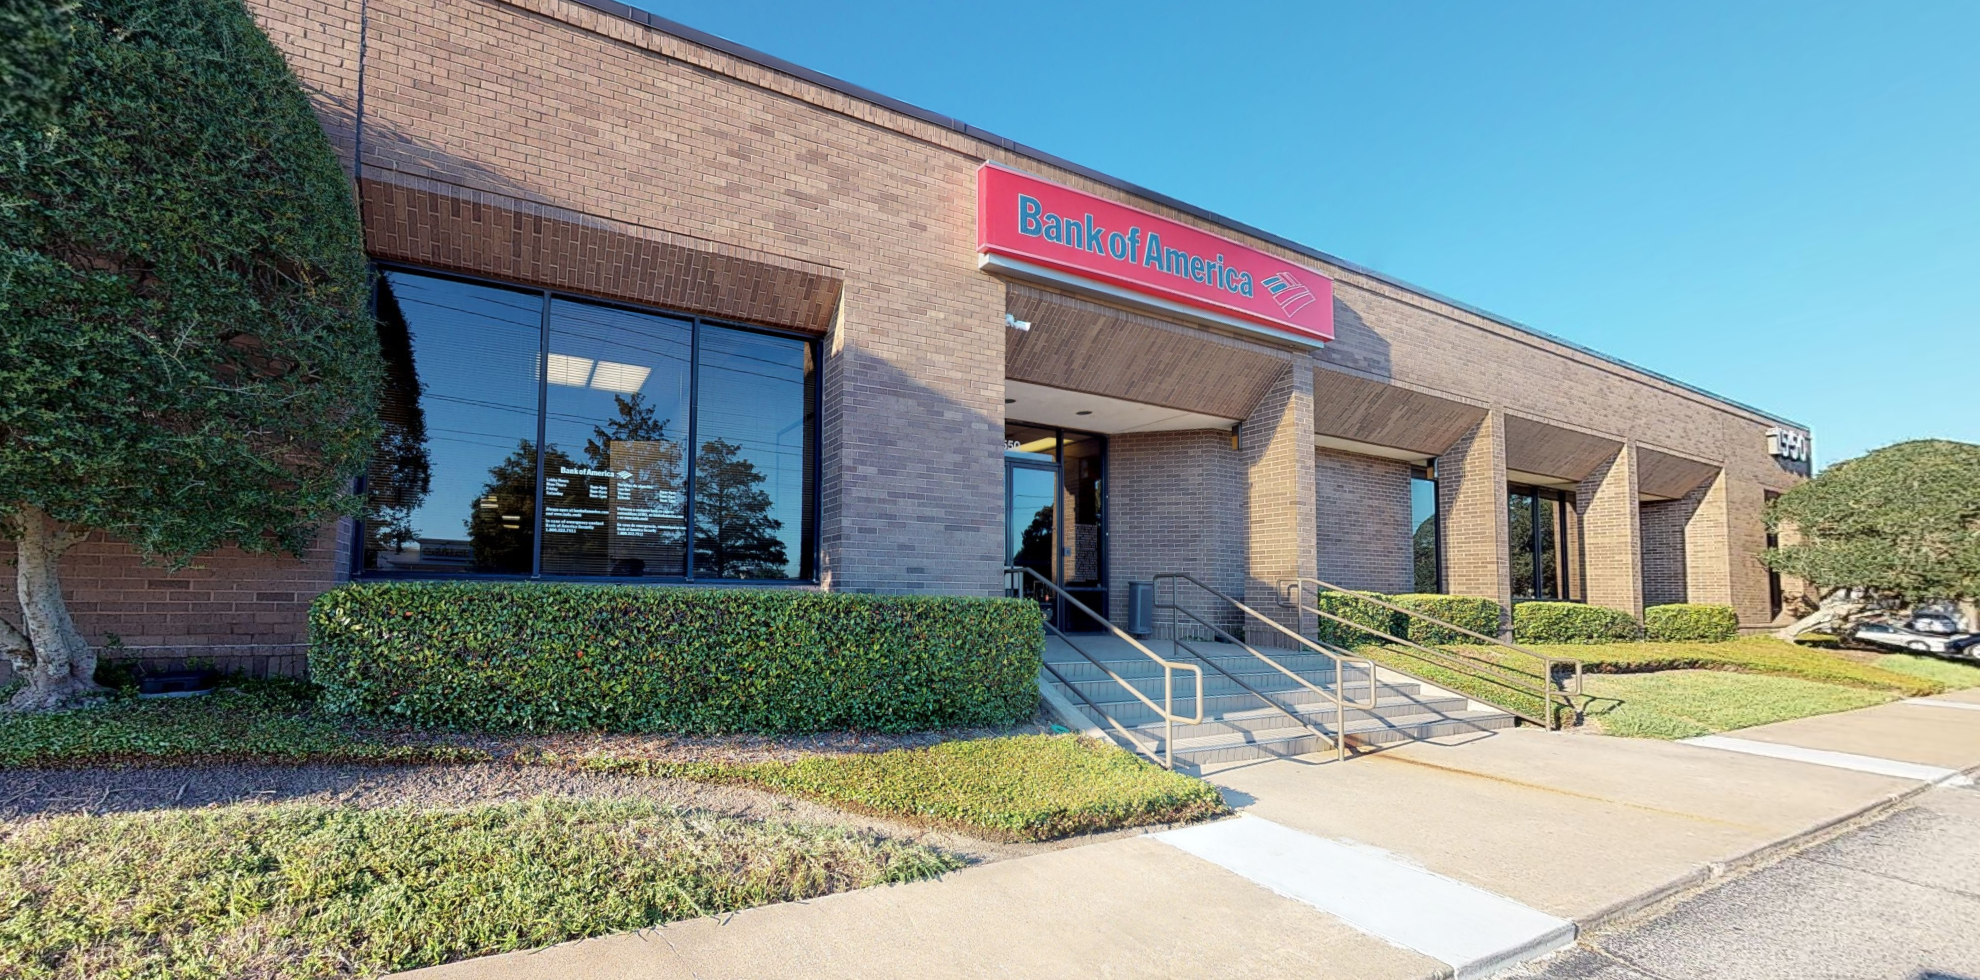 Bank of America financial center with drive-thru ATM | 1550 W Bay Area Blvd, Friendswood, TX 77546